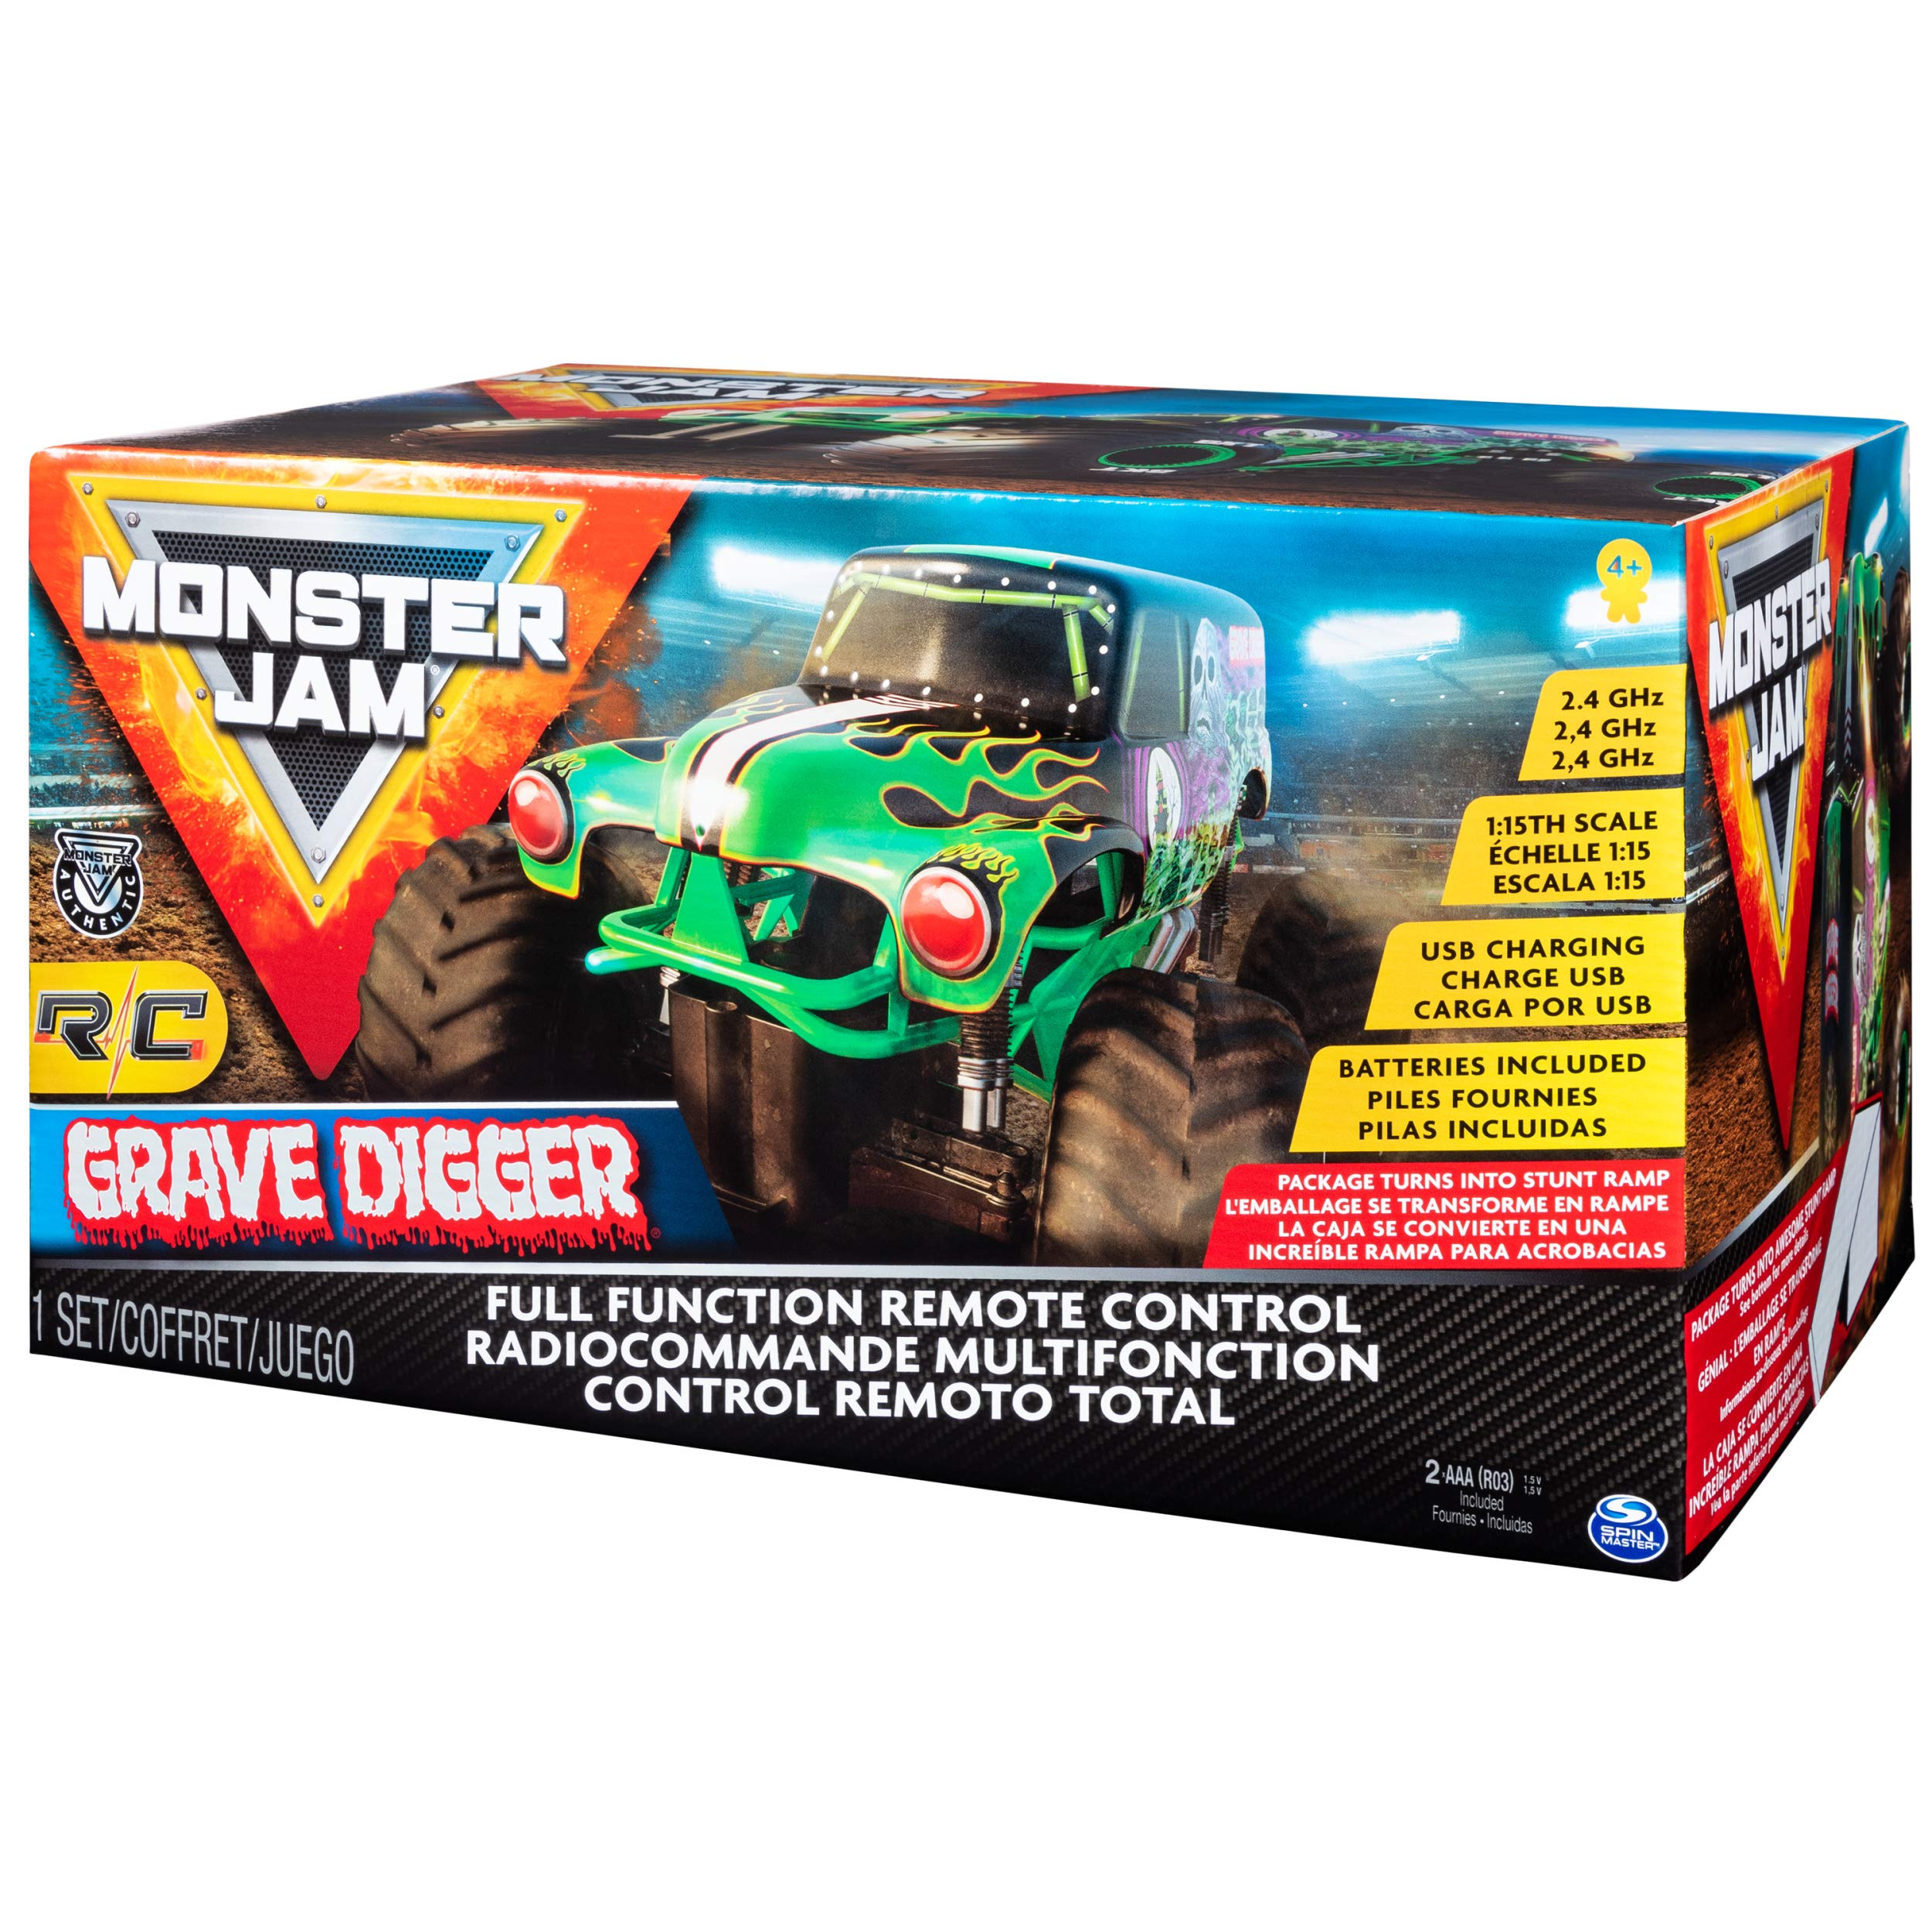 Monster Jam Official Grave Digger Remoter Control Monster Truck, 1: 15 Scale, 2.4Ghz by Monster Jam (Image #9)